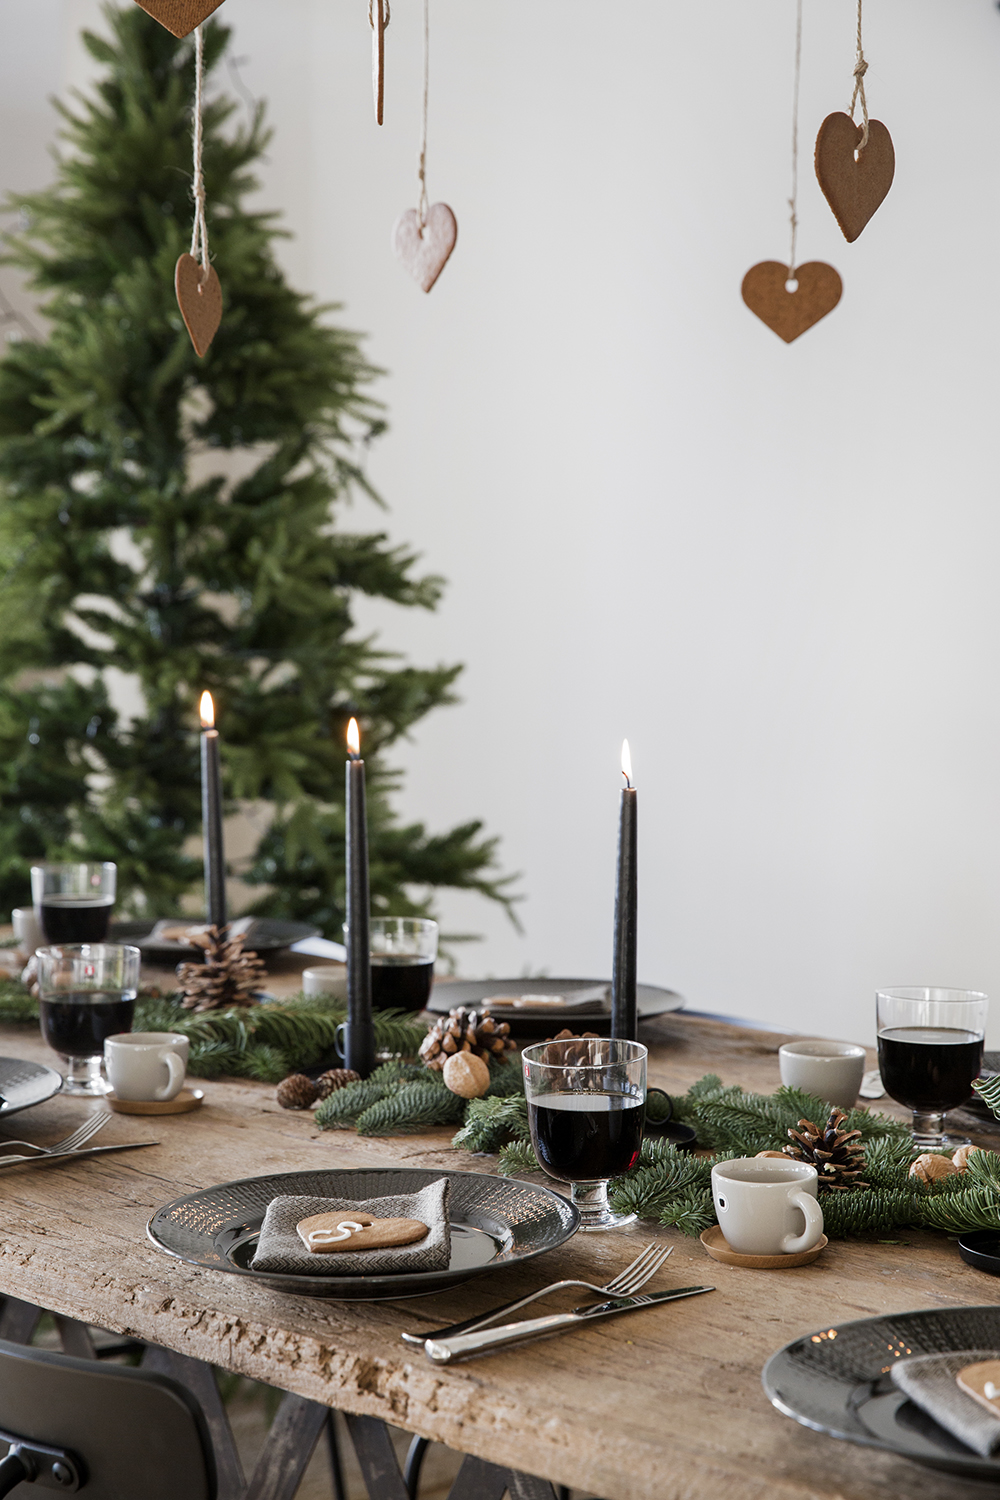 whats hot on pinterest 5 scandinavian christmas decorations 3 scandinavian christmas decorations whats hot on pinterest